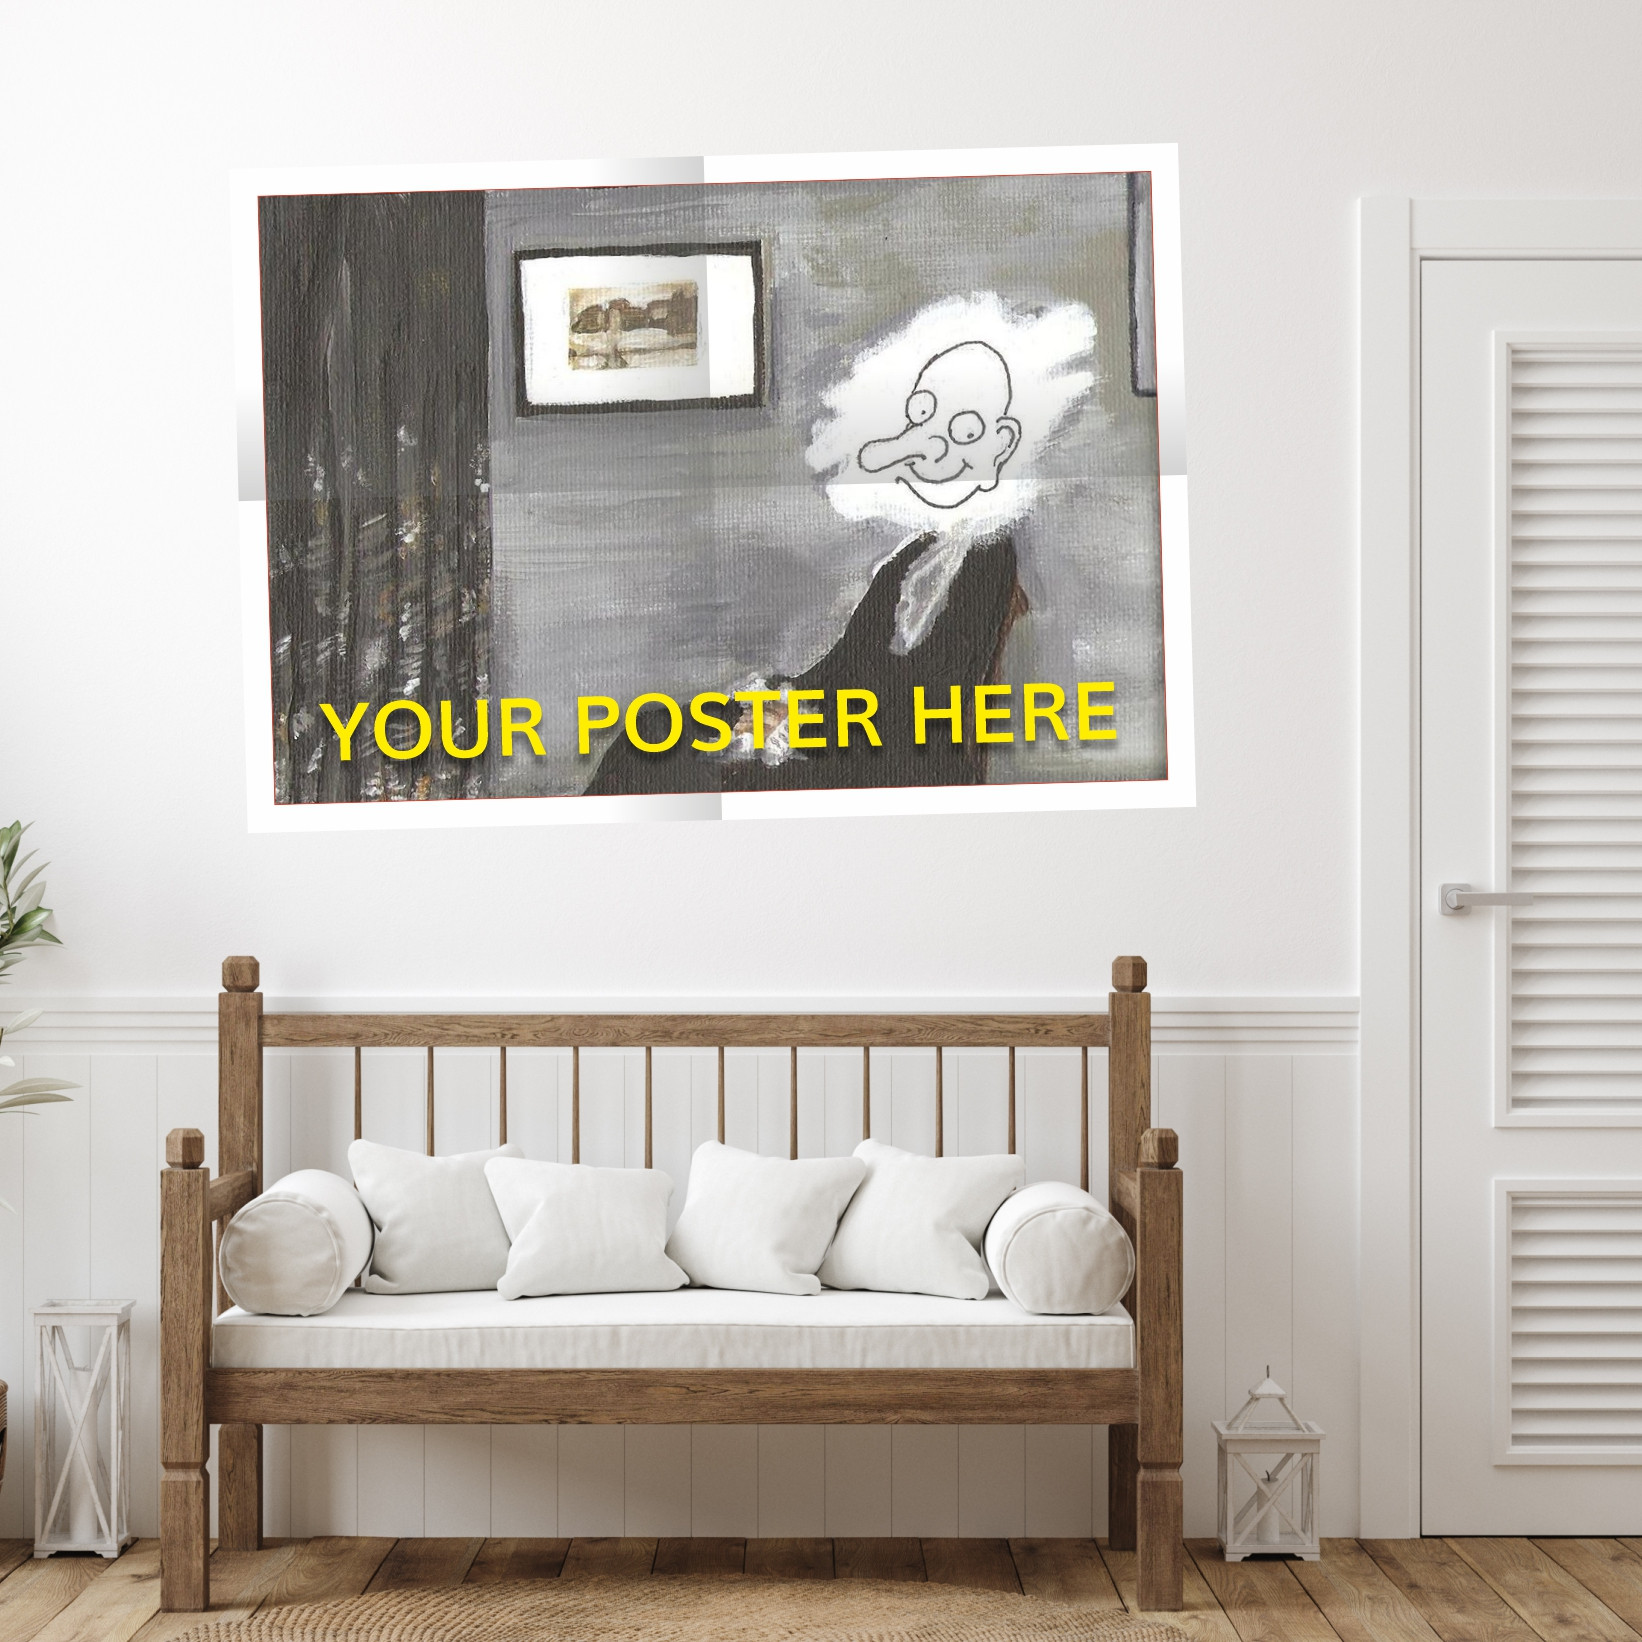 Big Huge Photo/poster Print